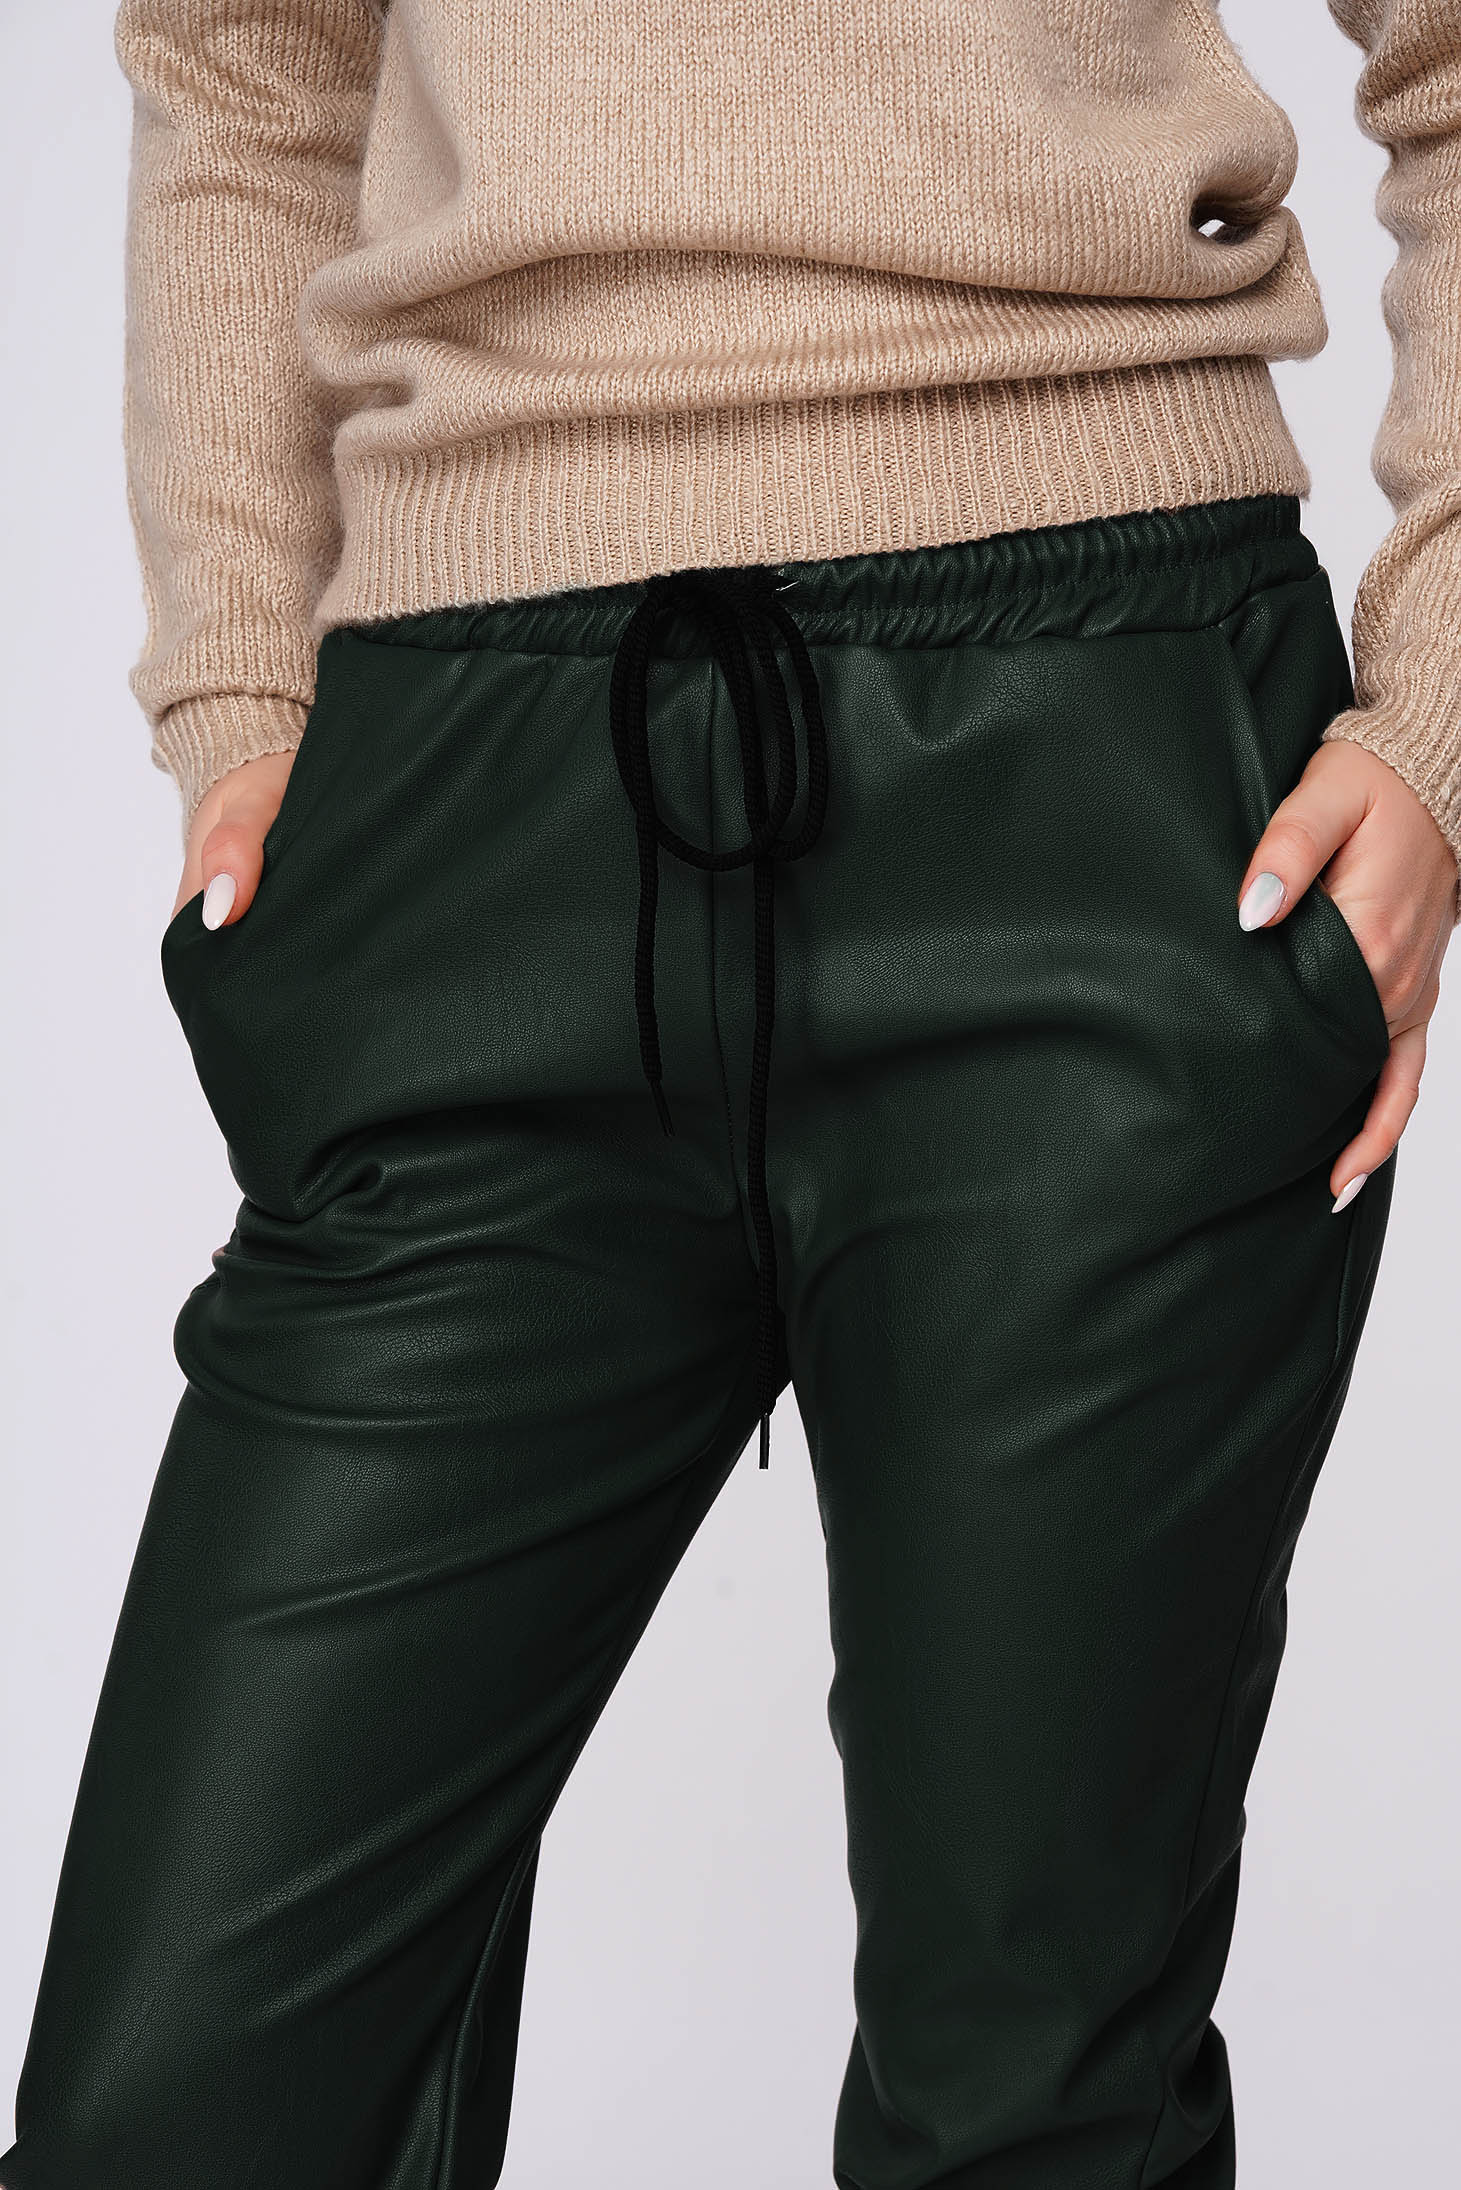 Green trousers casual medium waist elastic waist faux leather